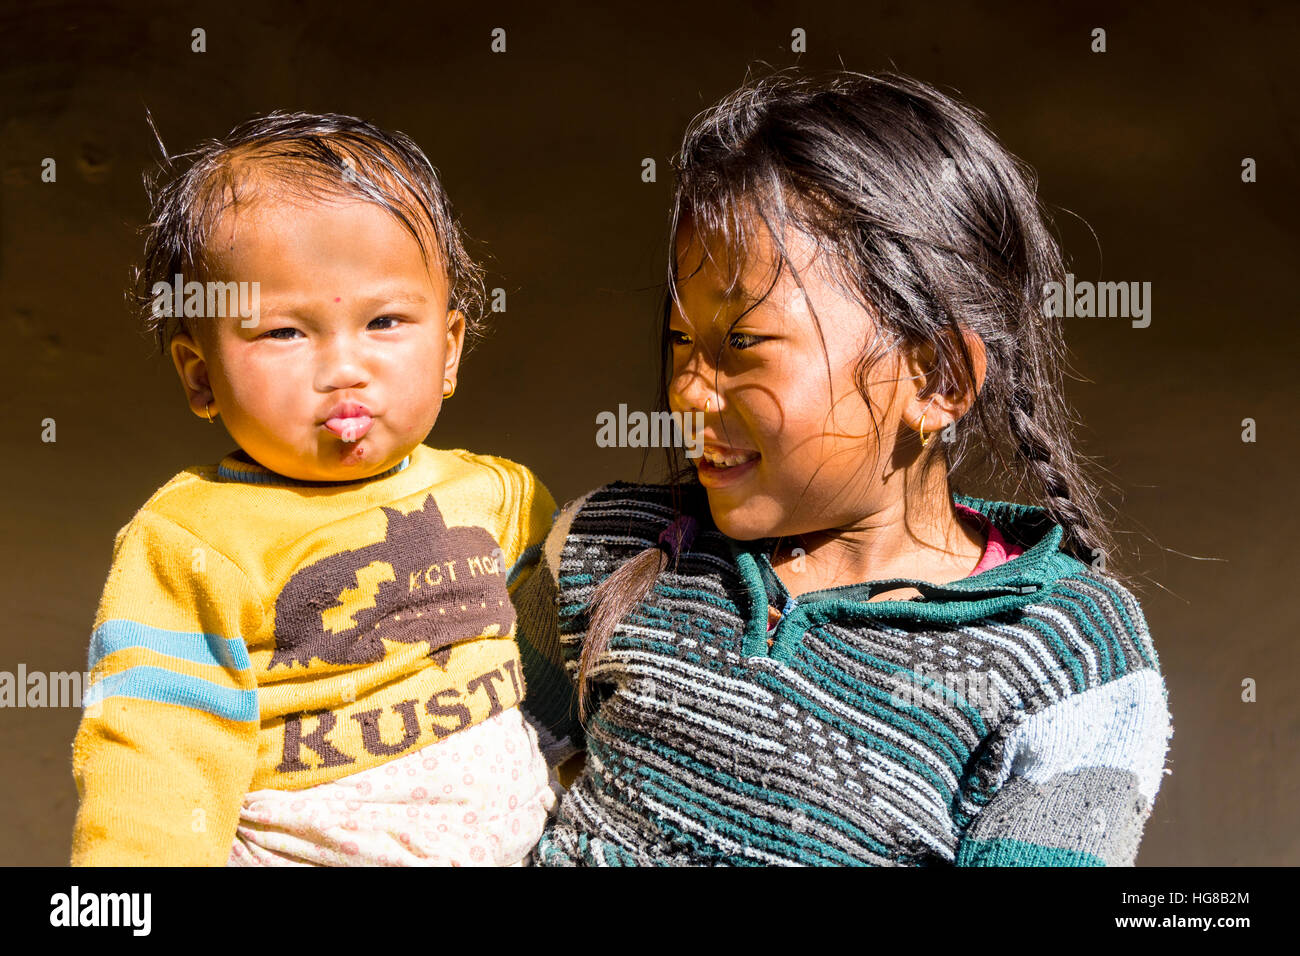 Portrait, young girl hugging even younger boy, Ghandruk, Kaski District, Nepal - Stock Image